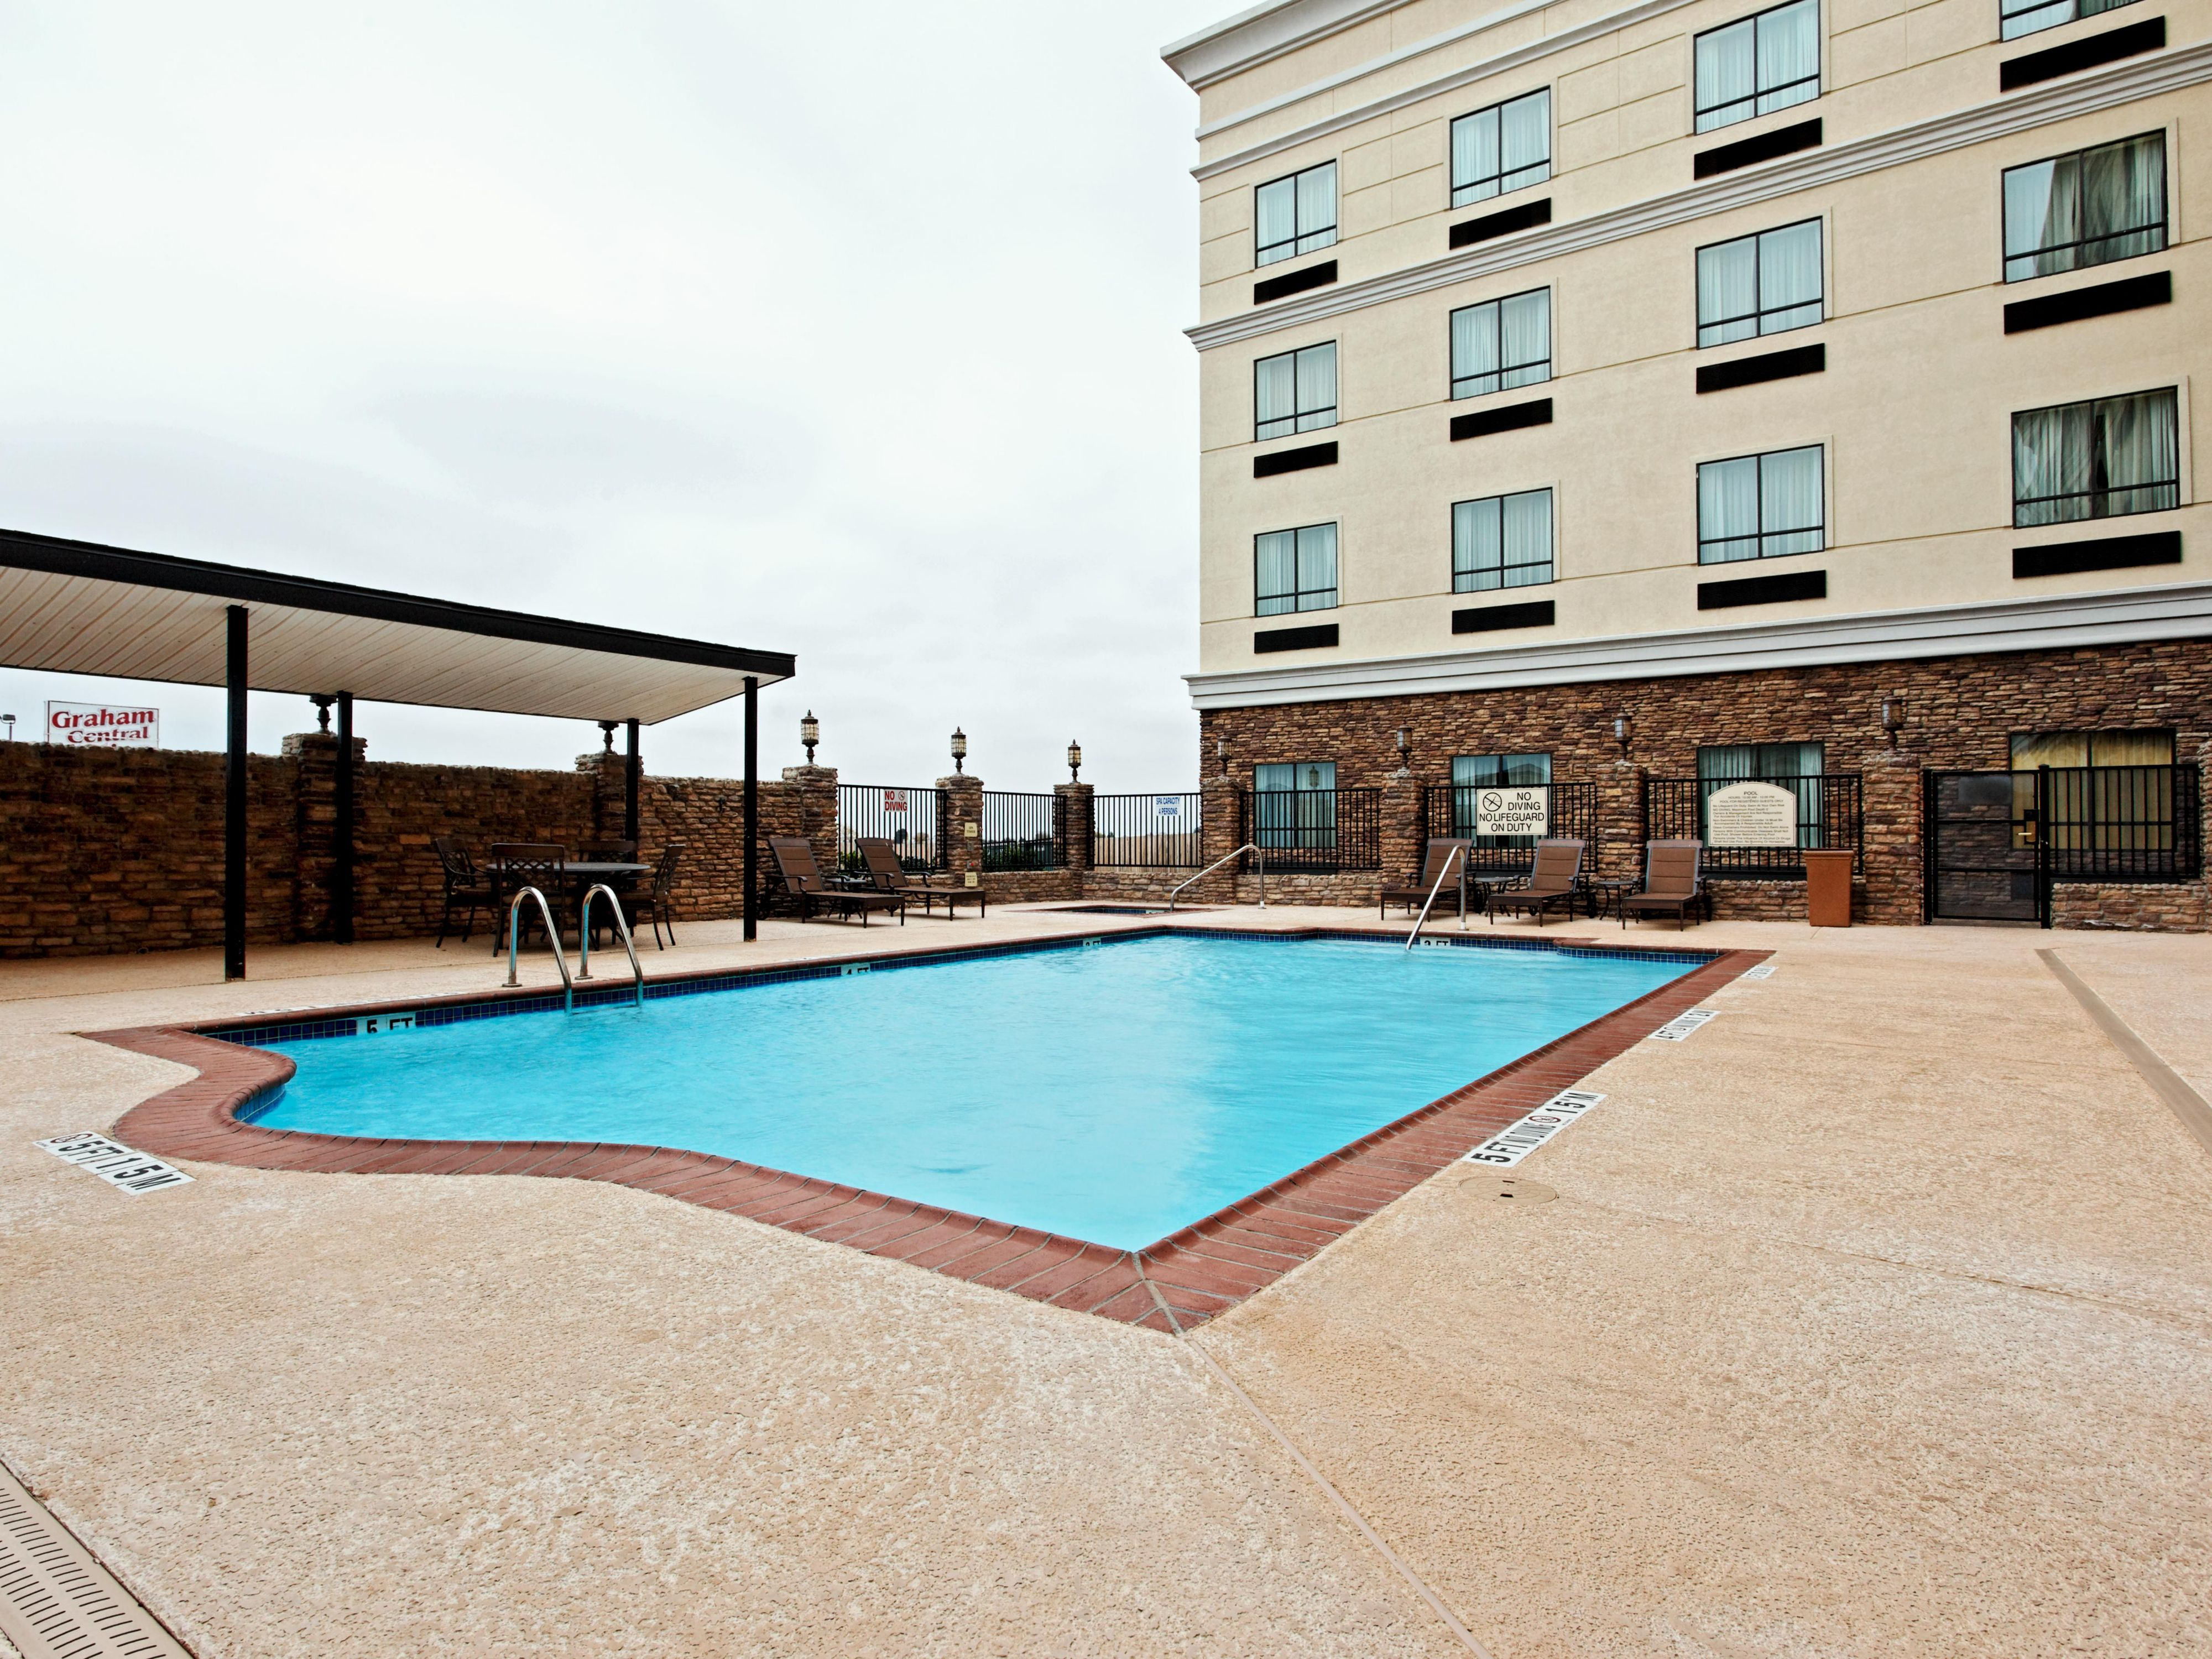 Bring the kids and catch some sun on a summer day by the pool!